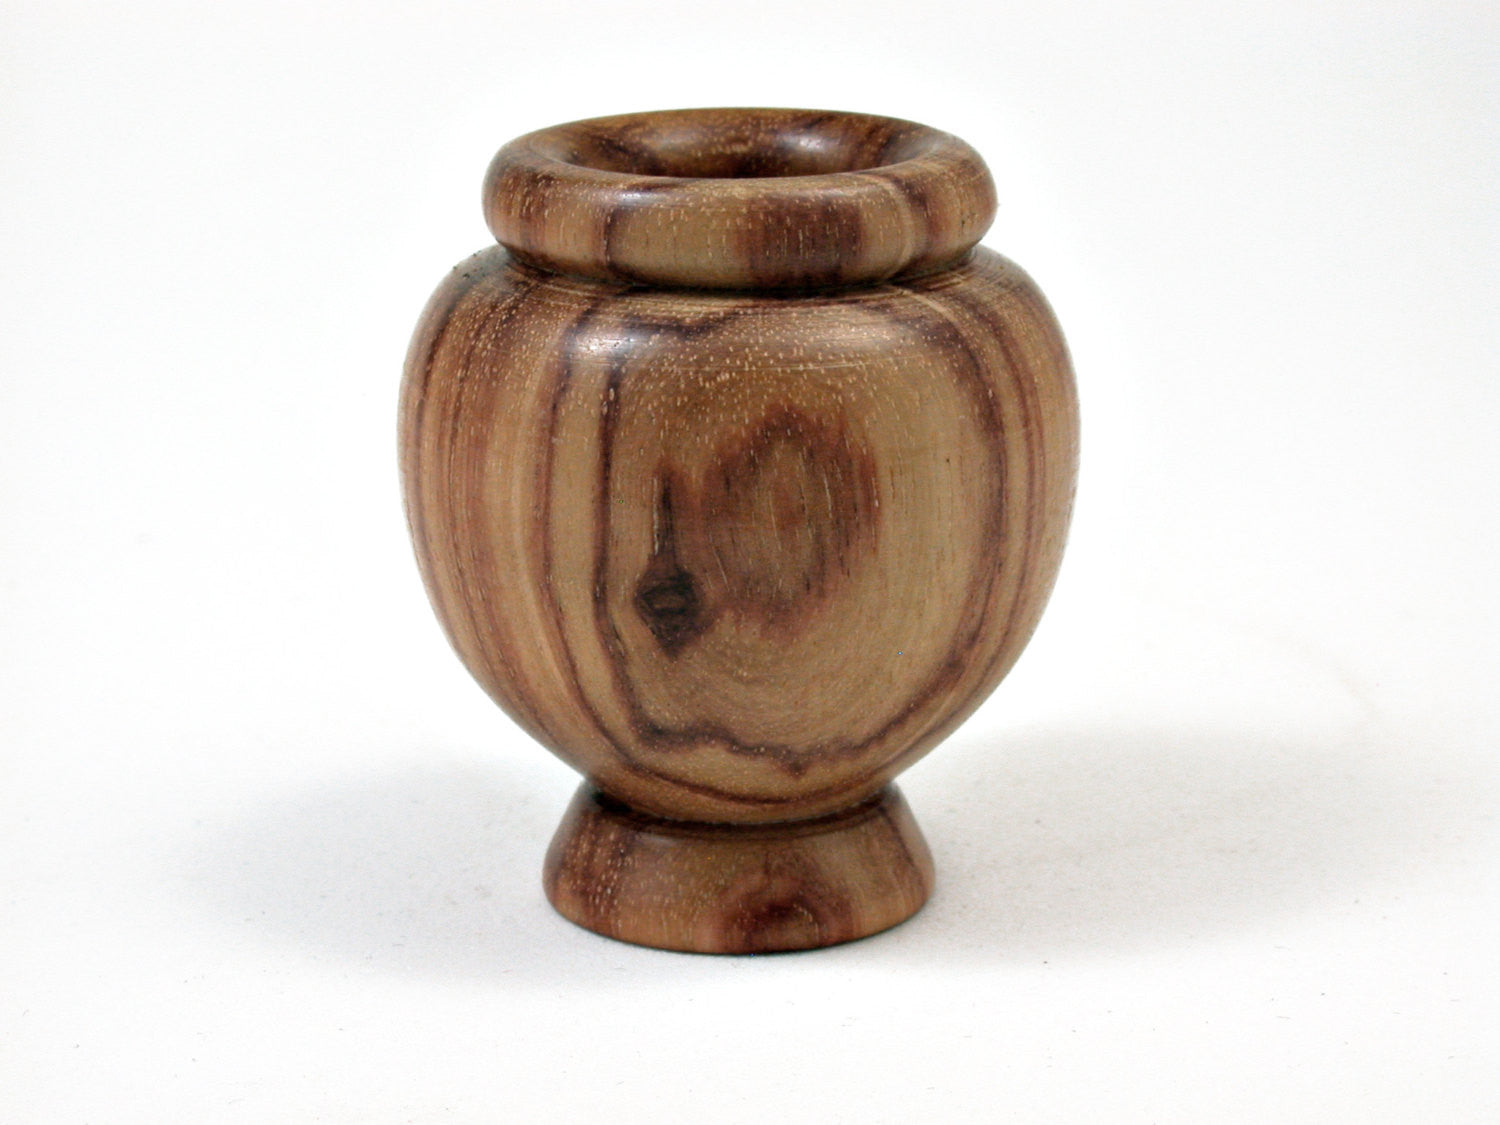 LV-0365 Tulipwood Miniature Wooden Vase, Footed Bowl, Hollow Form-CUTE